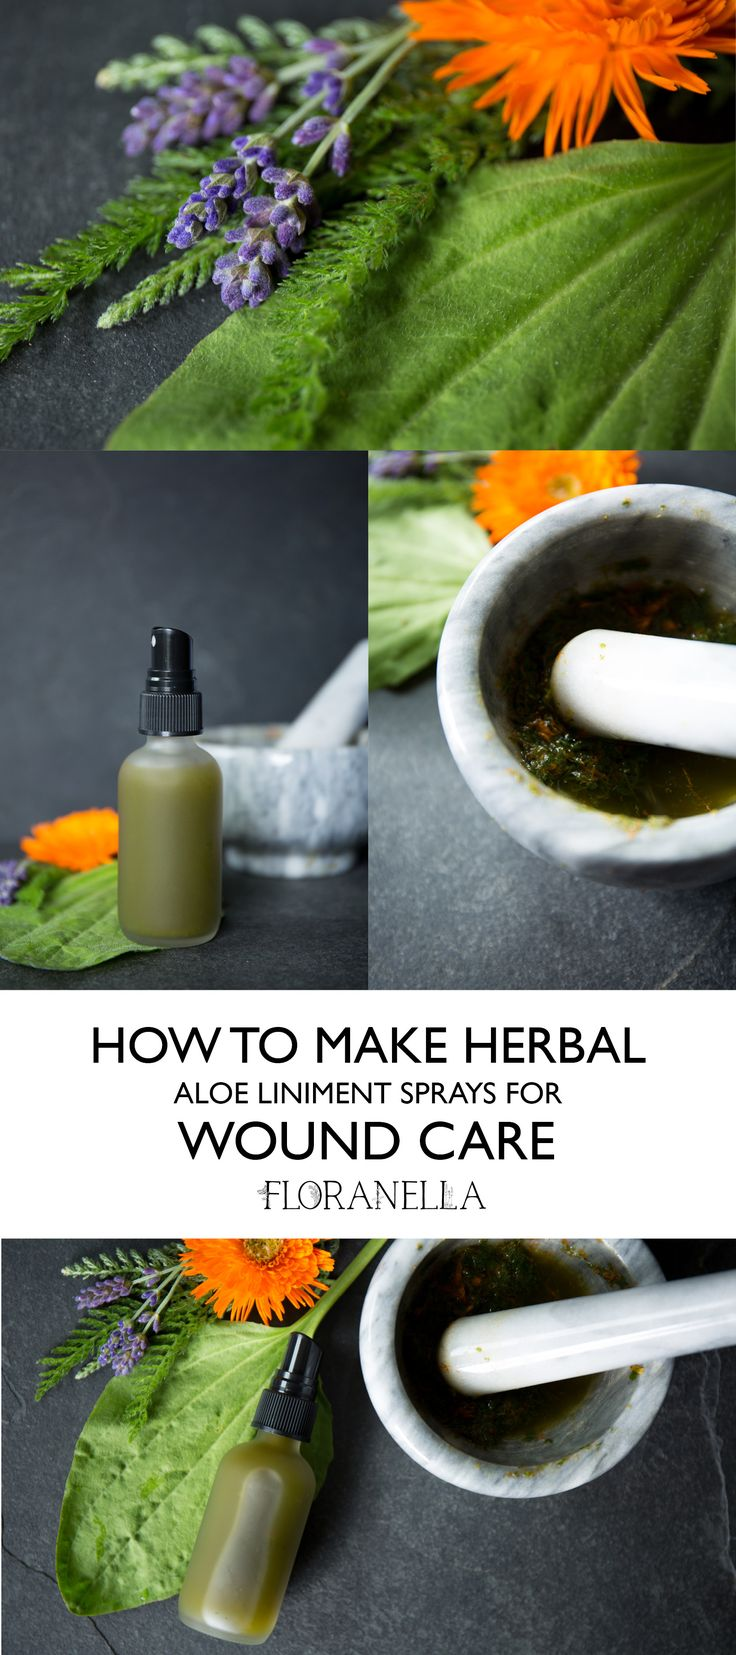 How to Make an Herbal Aloe Liniment Spray for Wound Care – Herbal First Aid